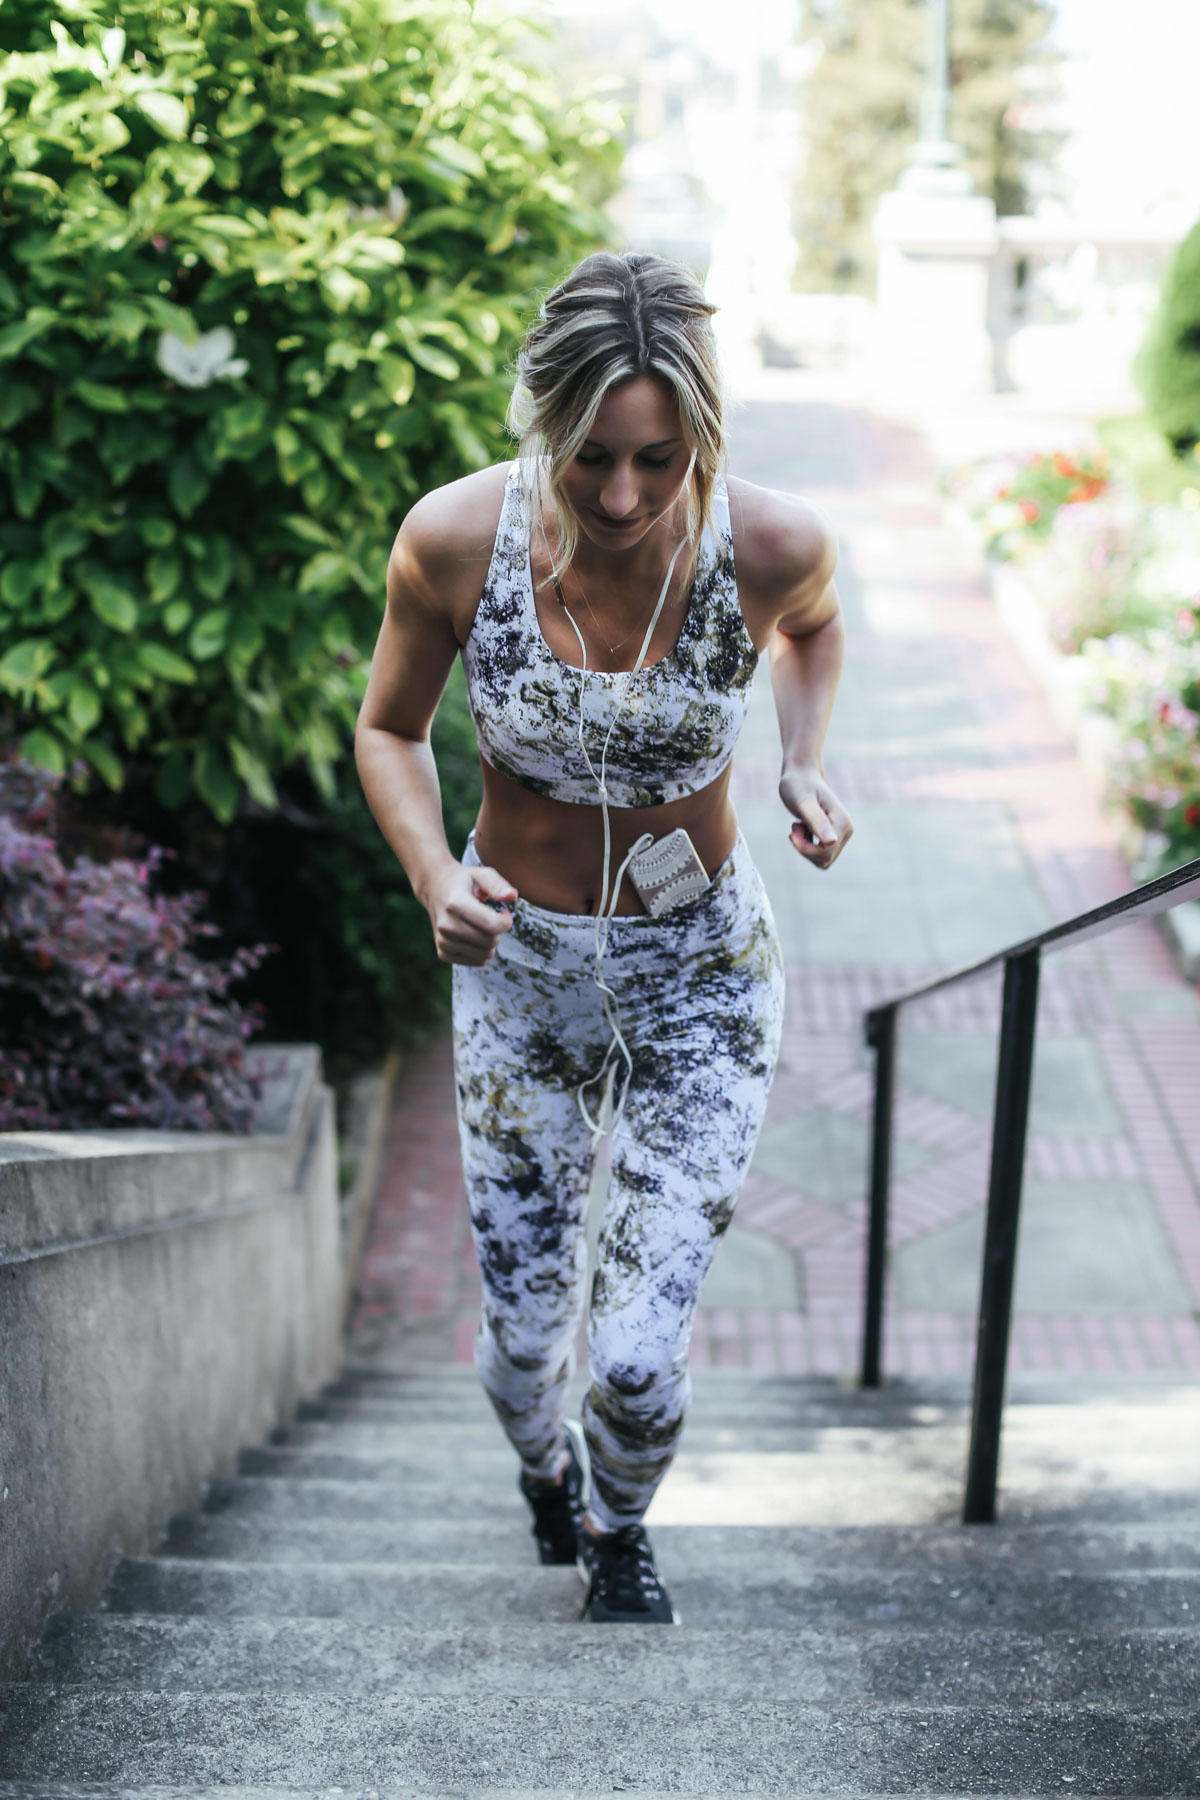 5 Things to Consider Before Starting a New Workout Routine